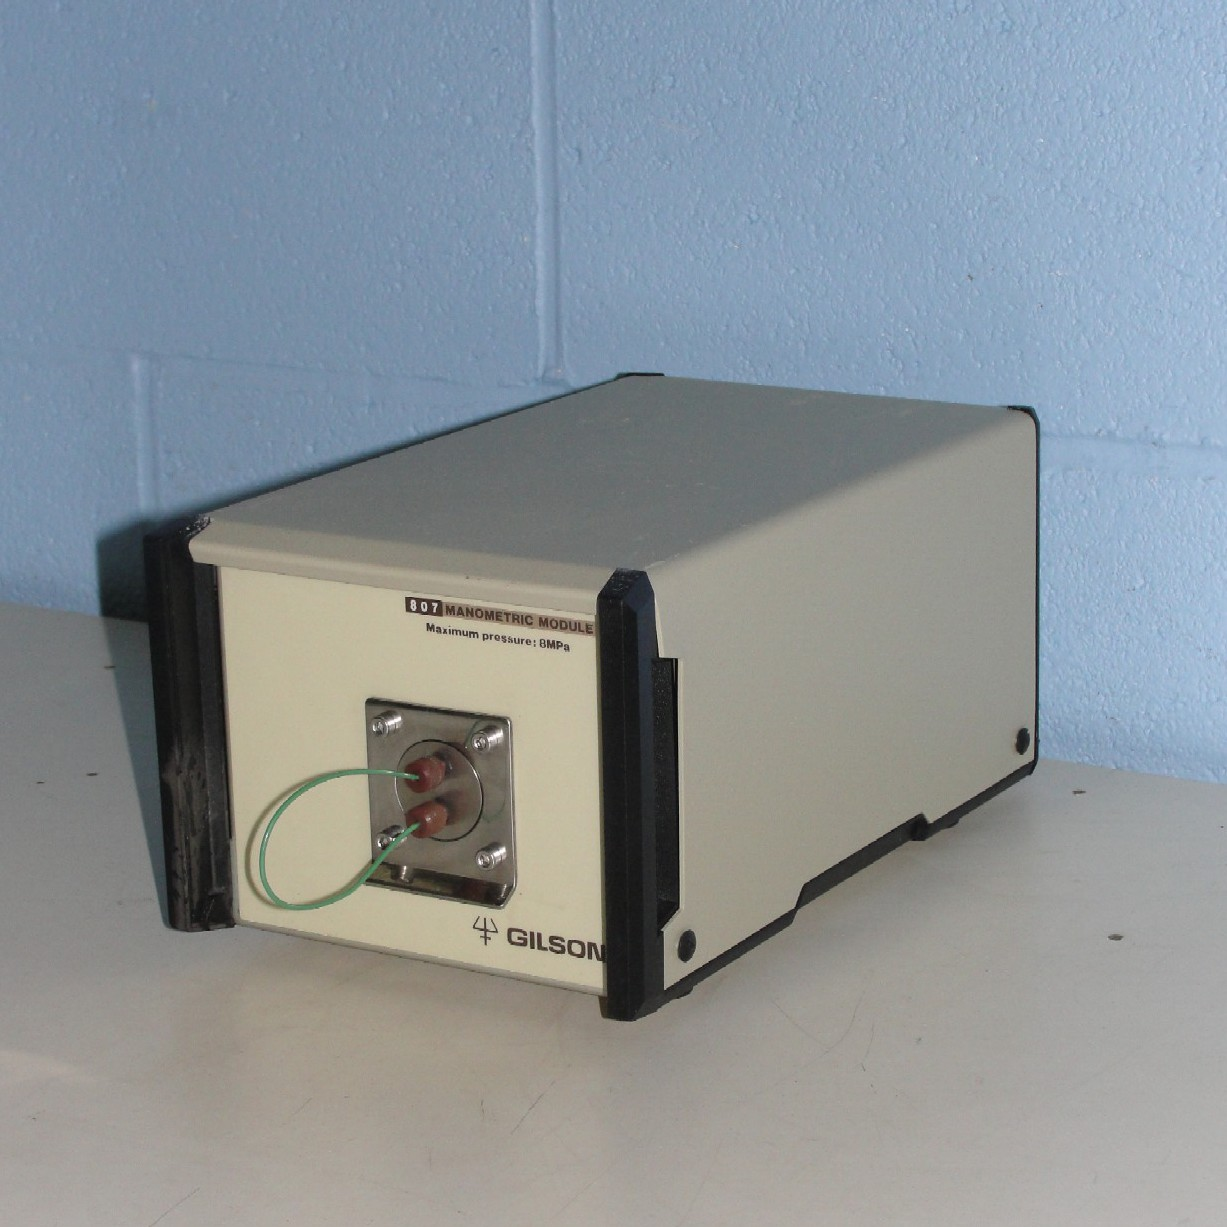 Gilson 807 Manometric Module Image